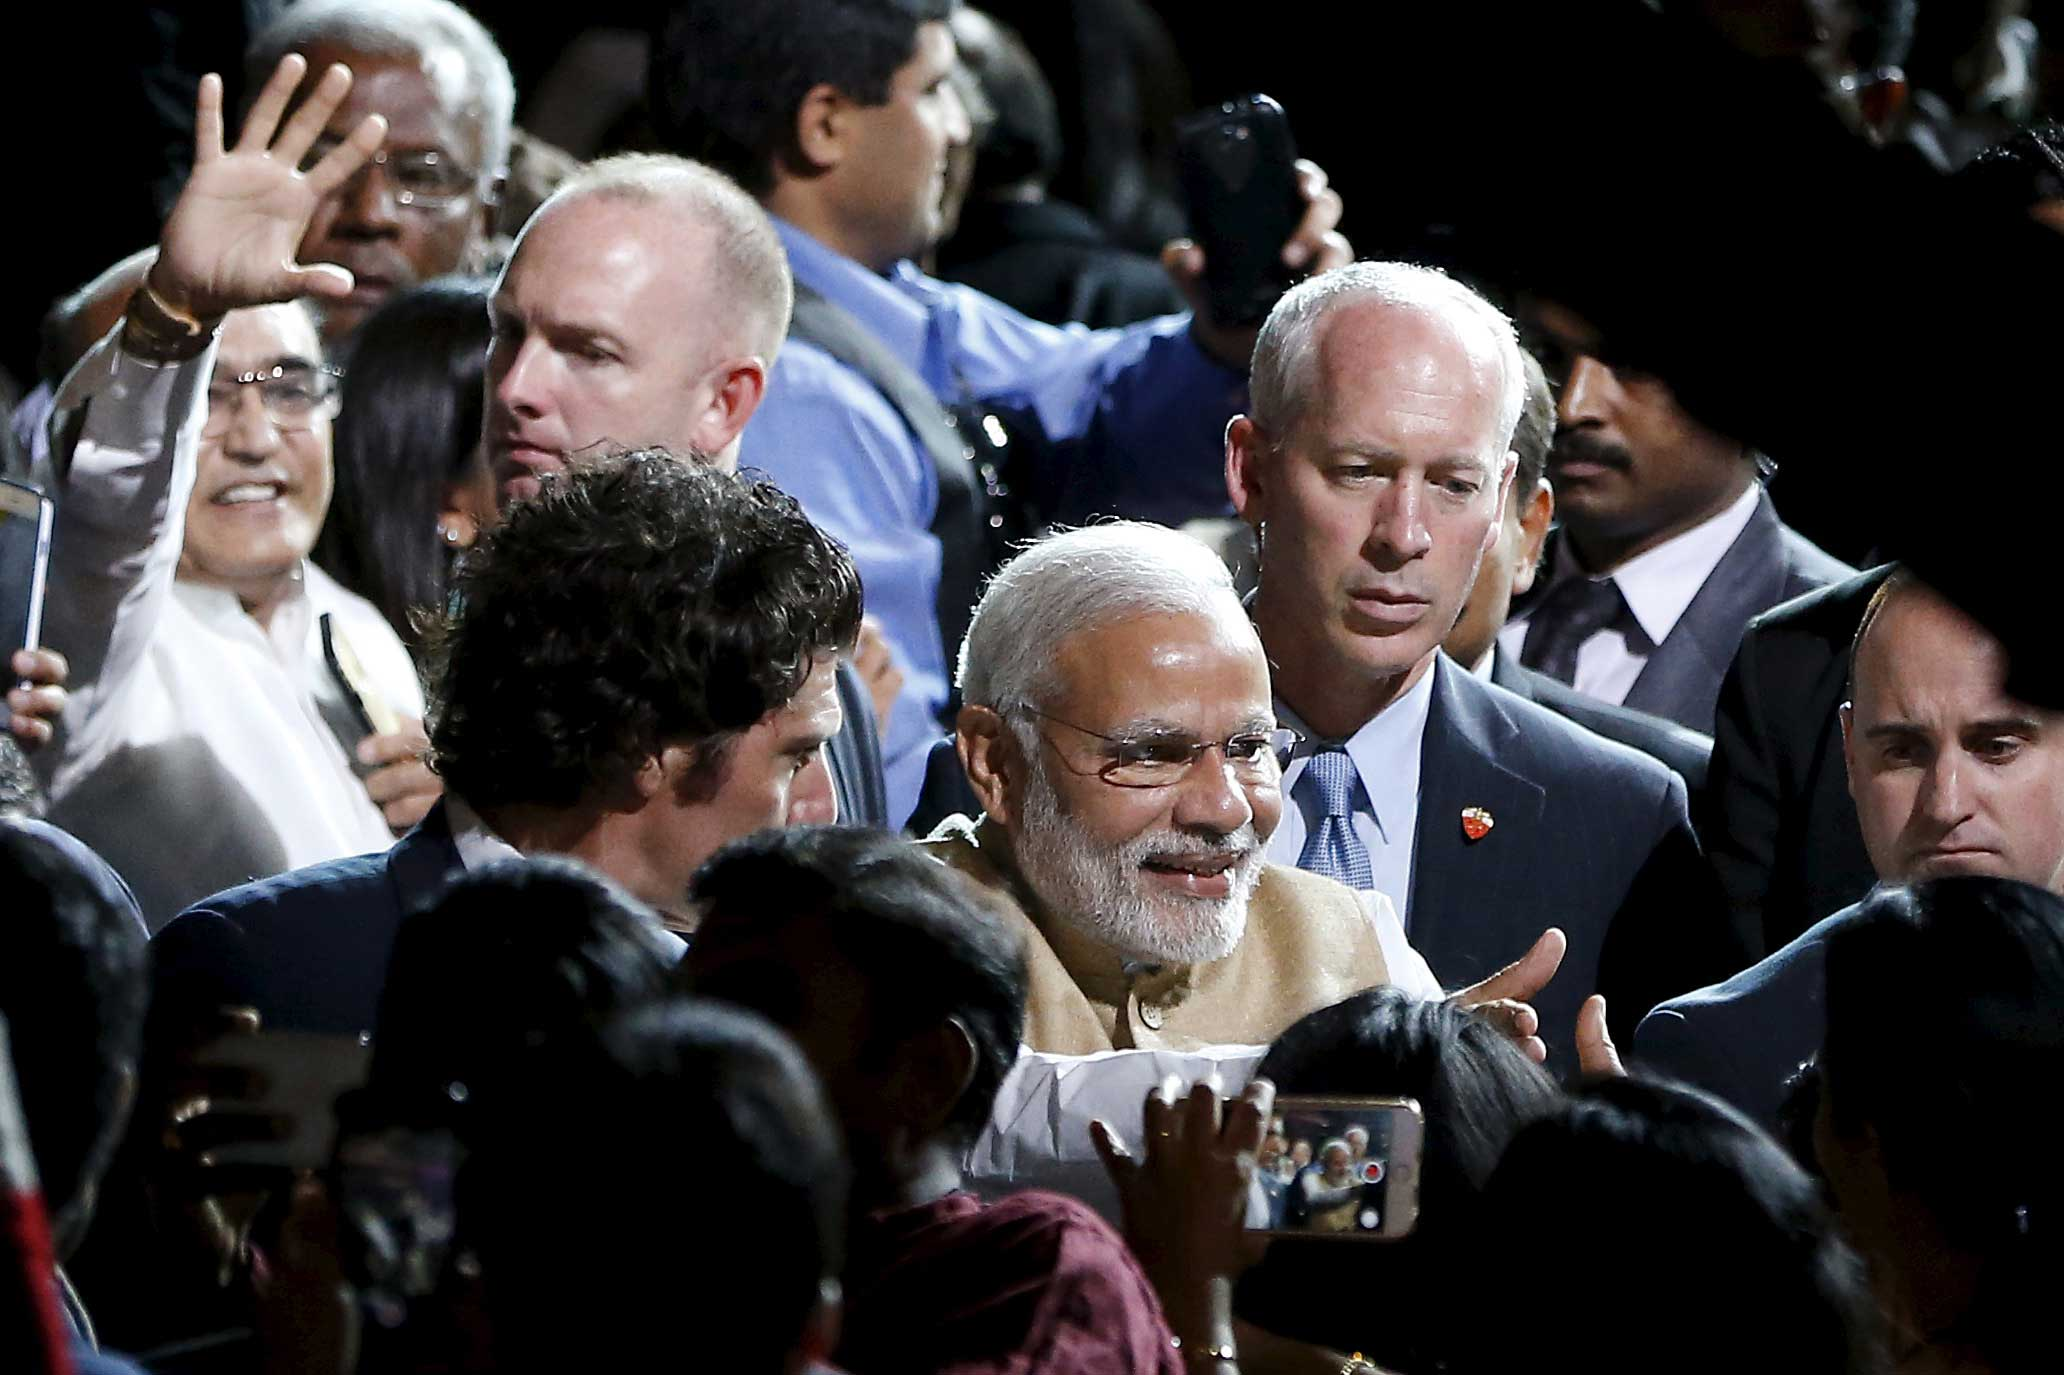 Indian PM Modi shakes hands with the crowd after speaking at a community reception at SAP Center in San Jose, California